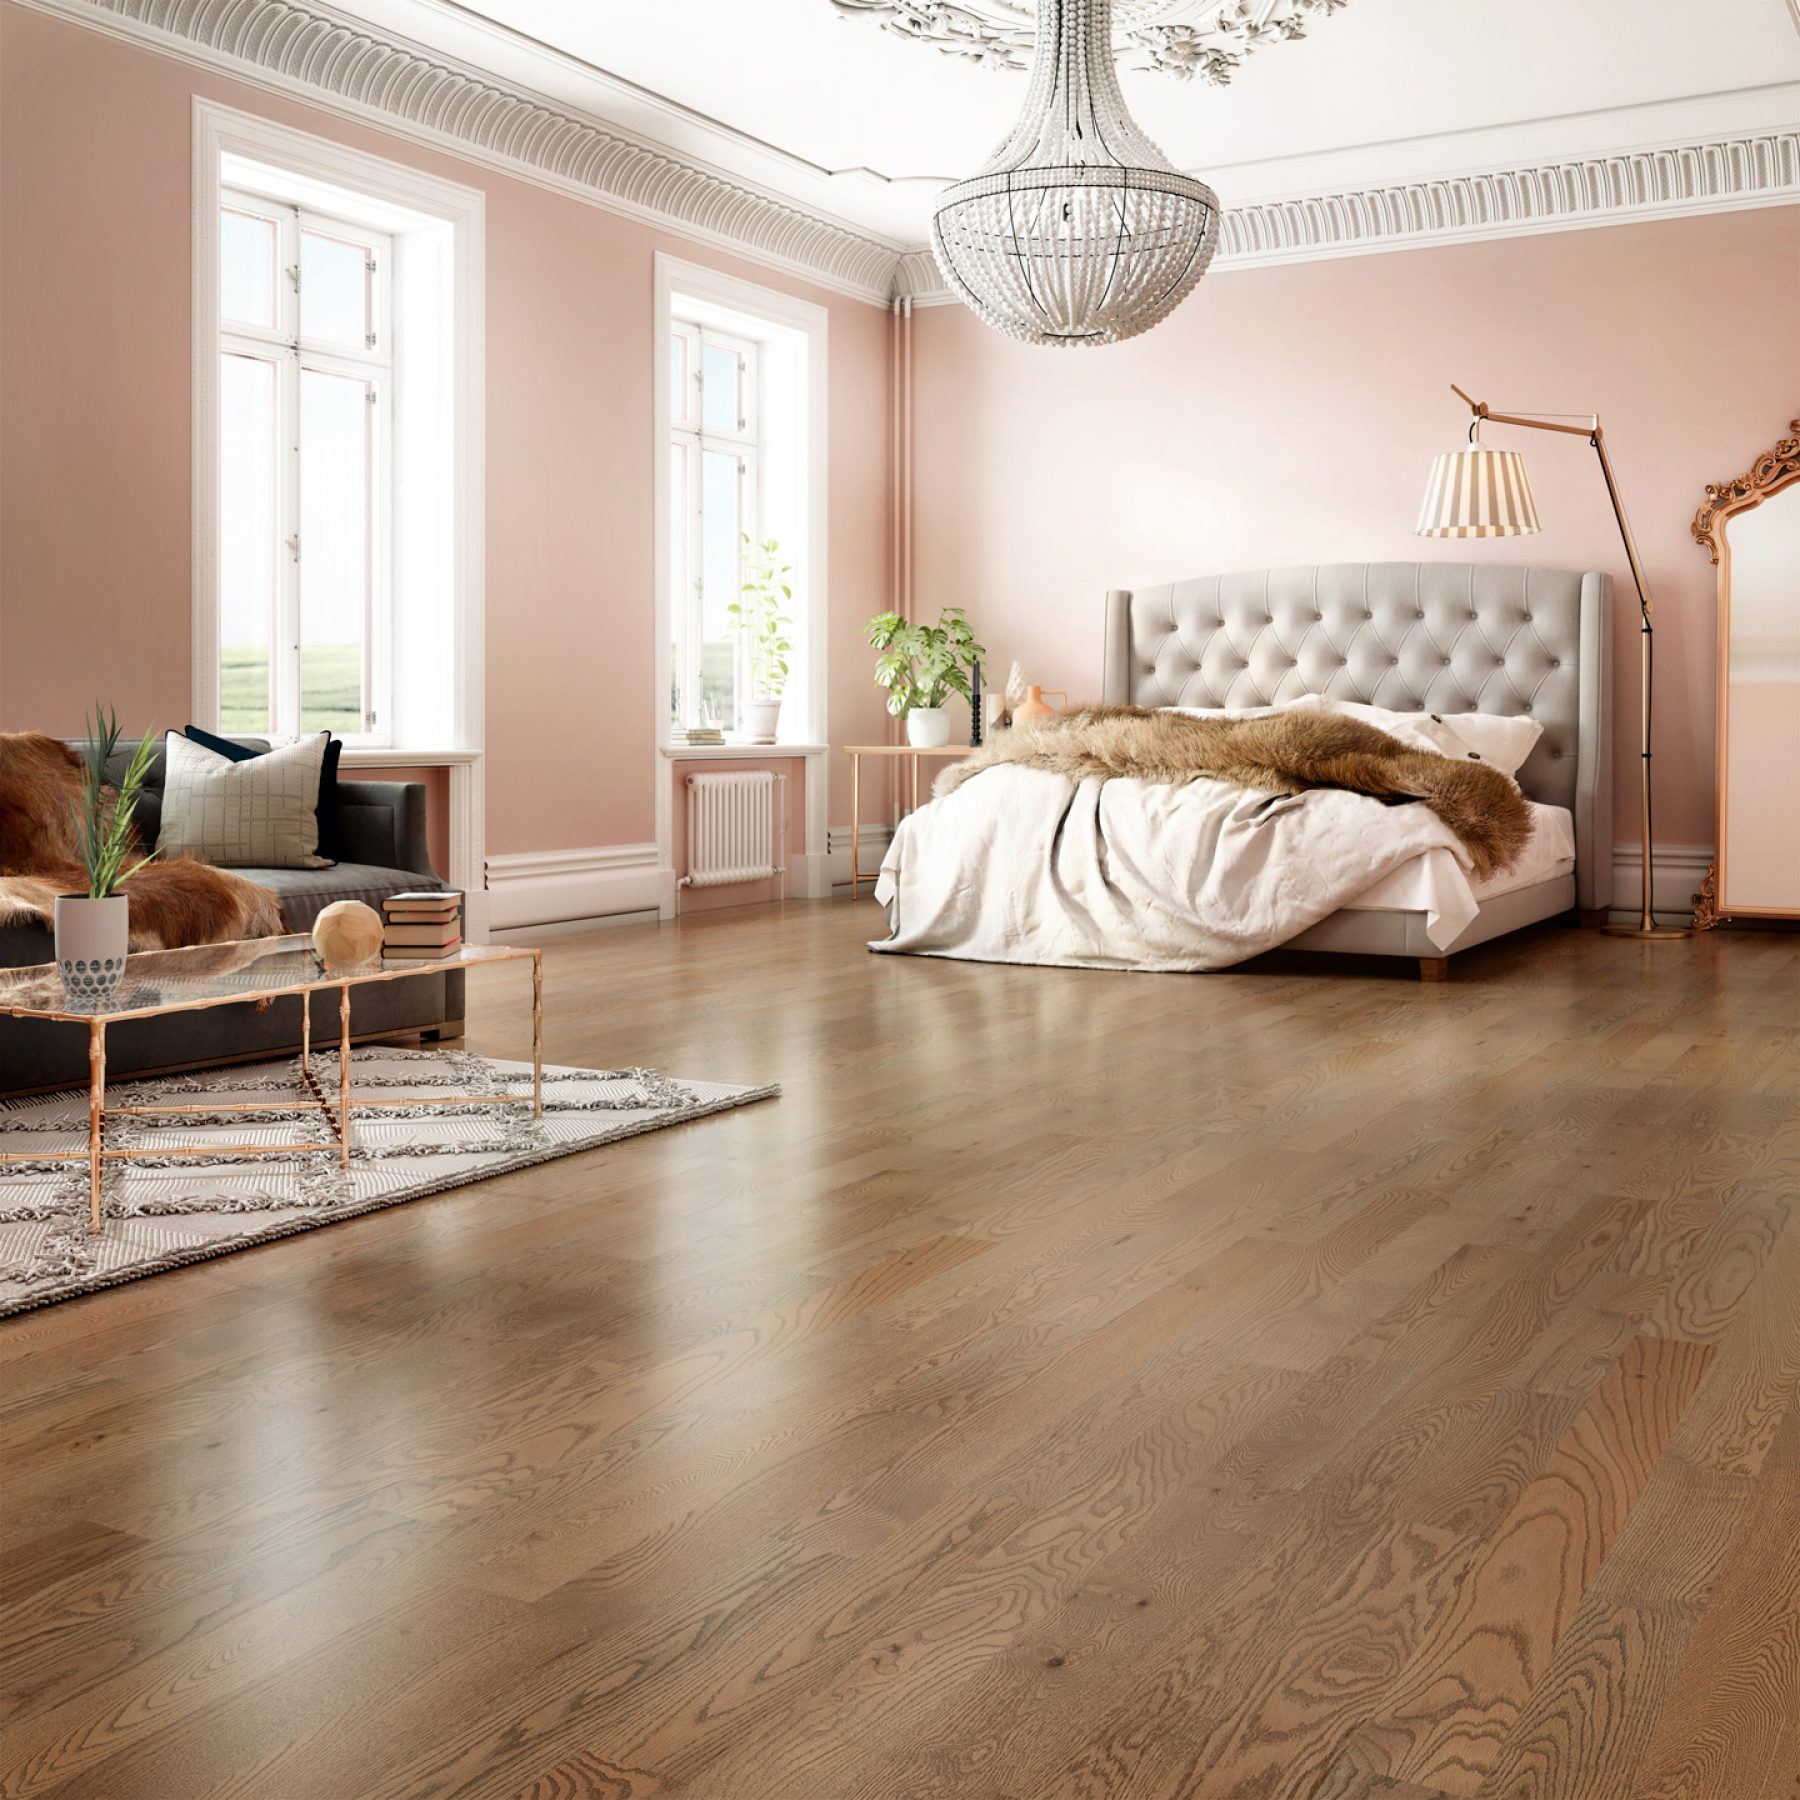 3d-floor-rendering-pink-transitionnal-master-bedroom